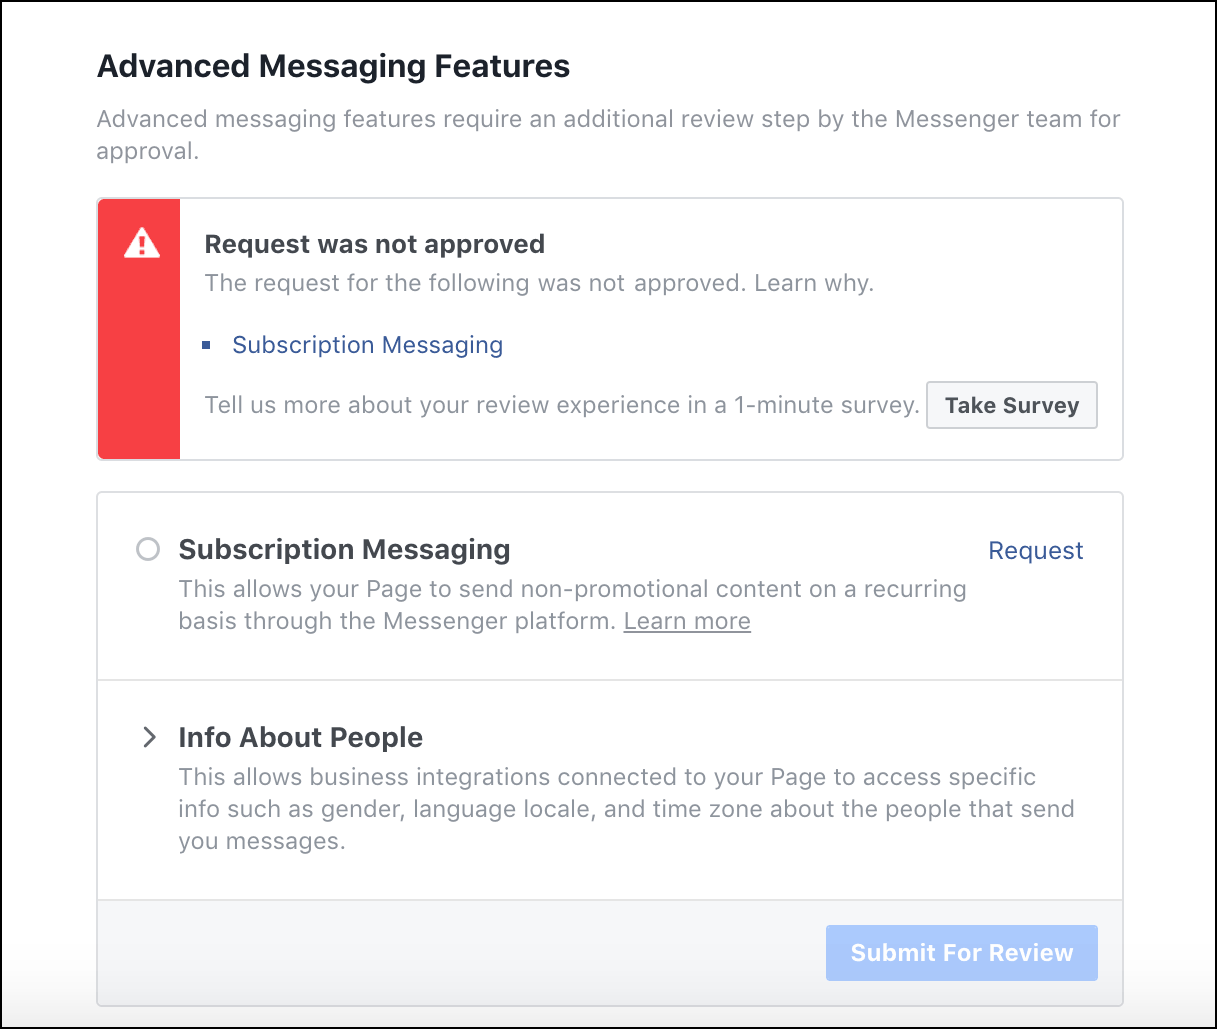 subscription messaging request not approved